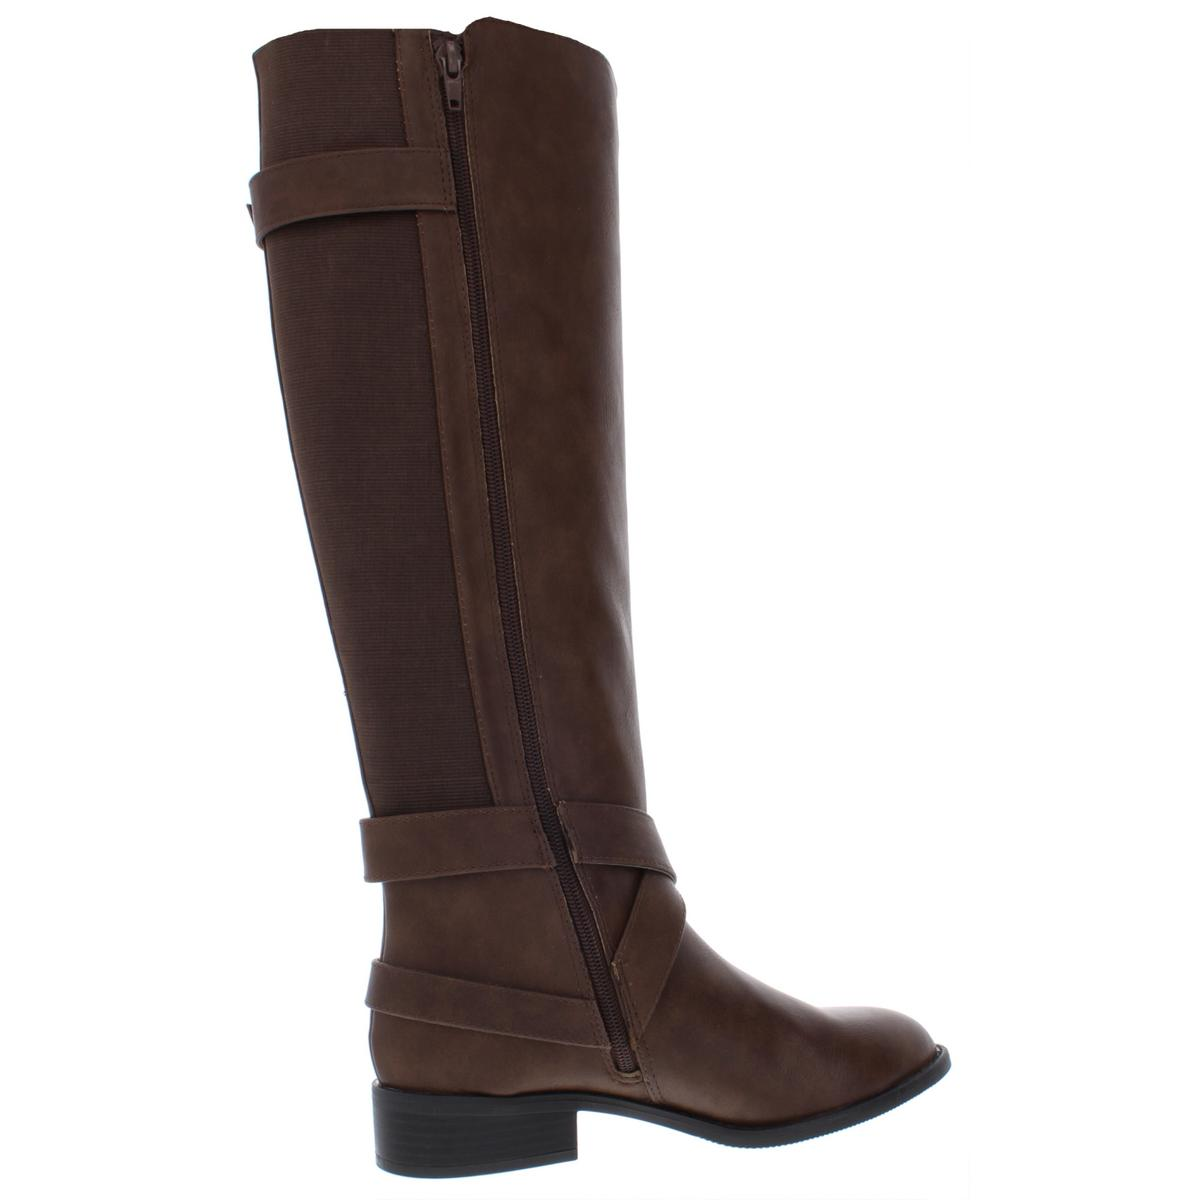 Thalia Sodi Womens Vada Faux Leather Over-The-Knee Riding Boots Shoes BHFO 7288